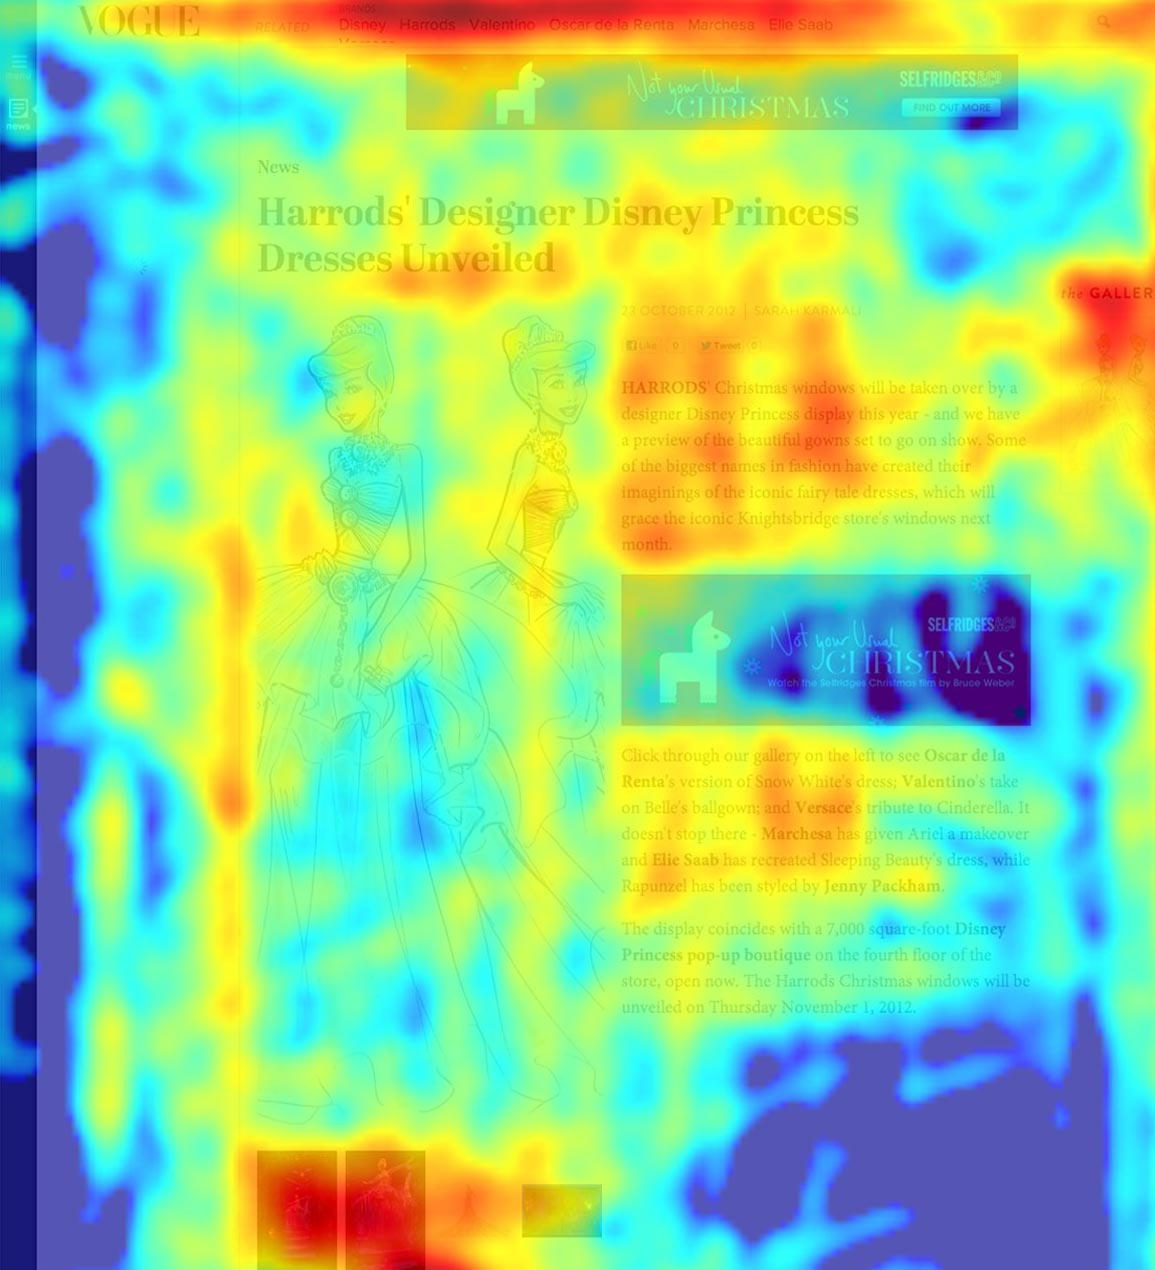 Heatmap showing usage of the new Vogue.co.uk Article